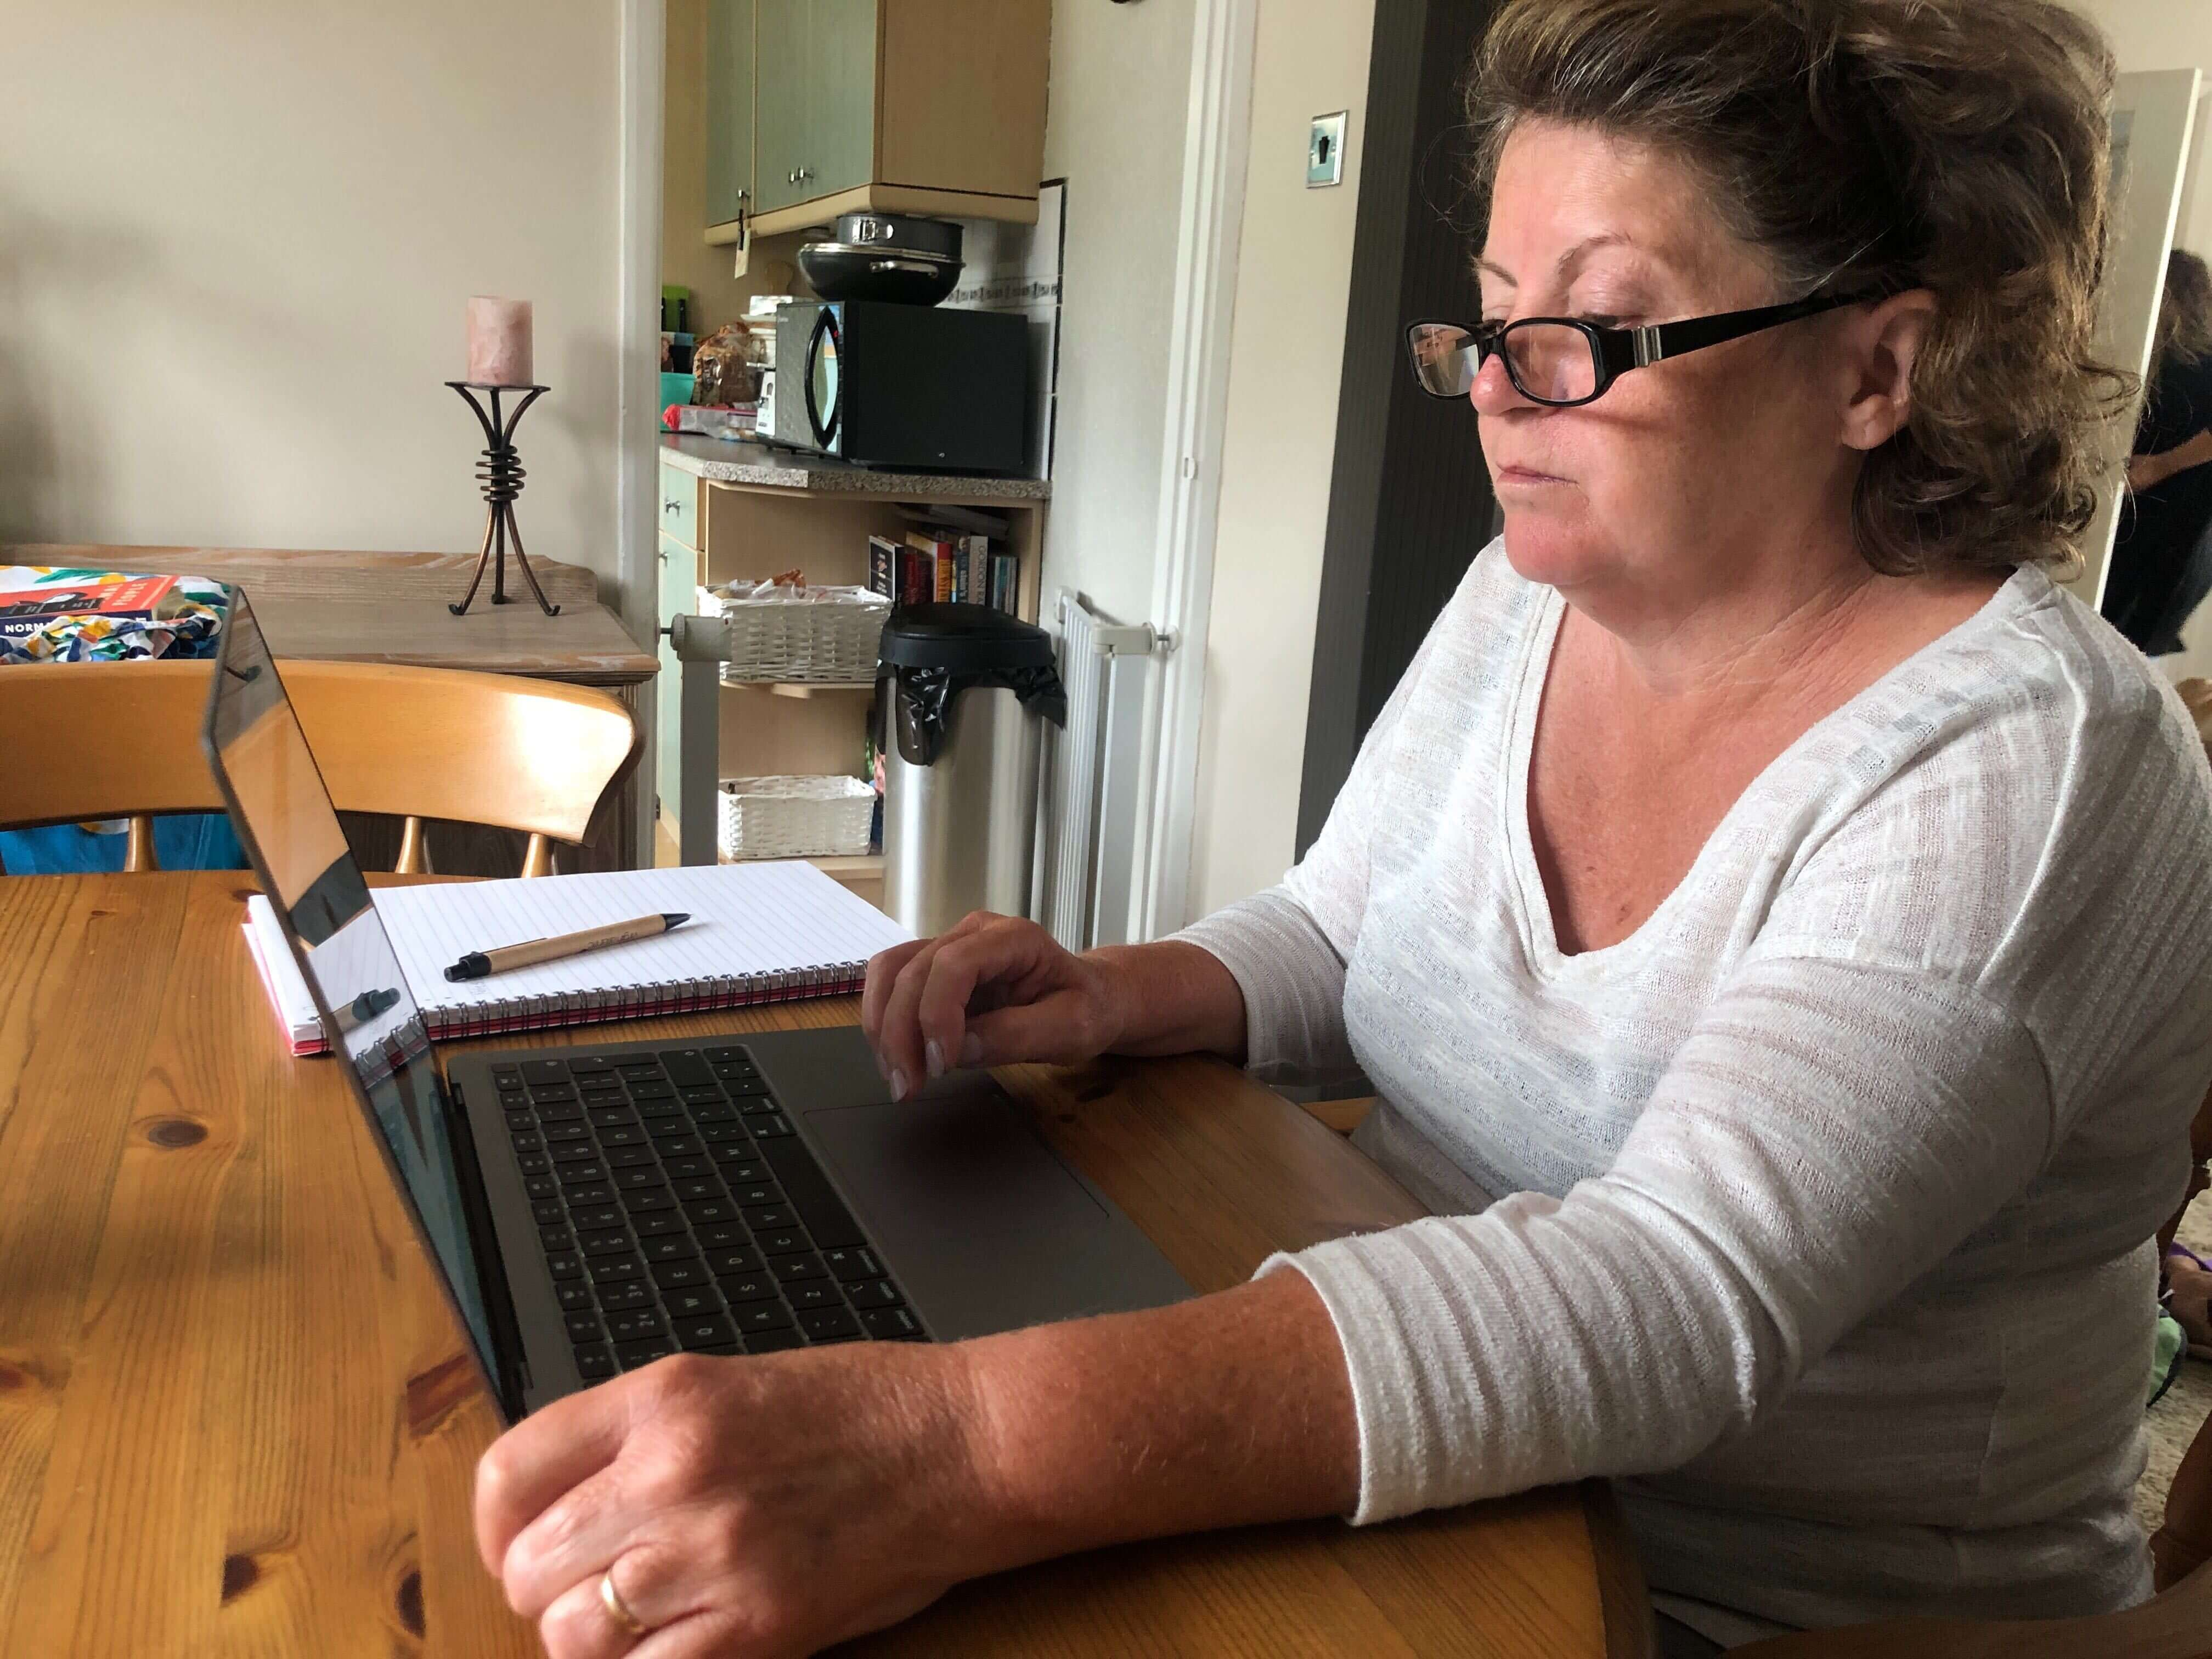 Debbie sat at her laptop at a table completing online training for the care certificate